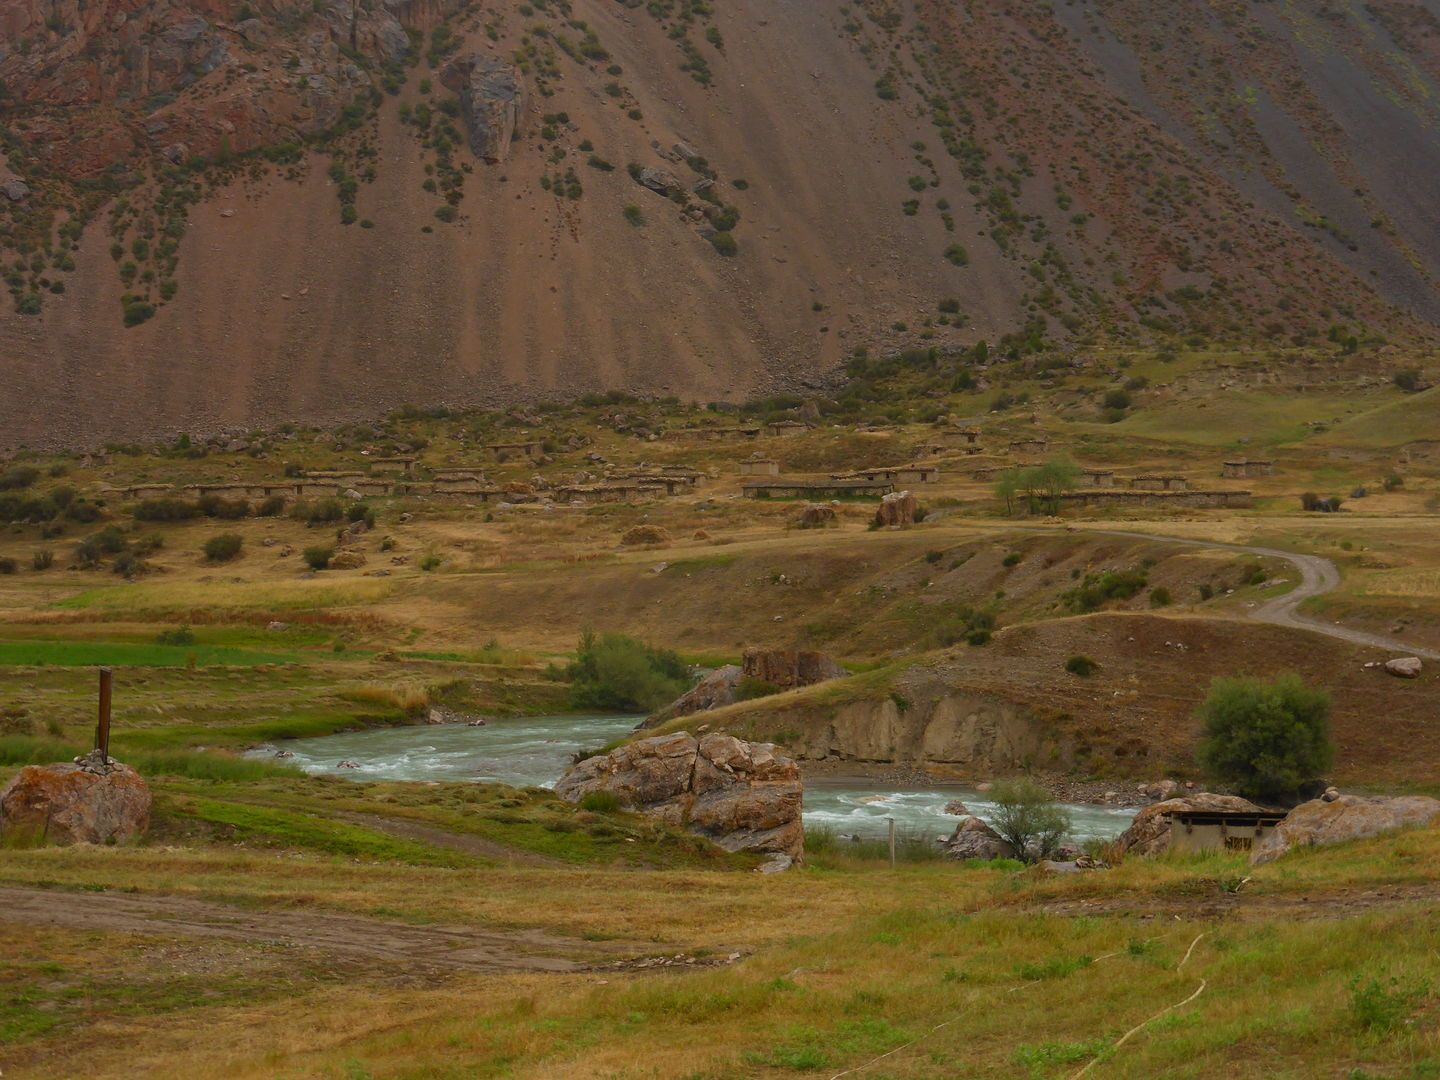 Tajikistan Tour has amazing nature for outdoor adventures